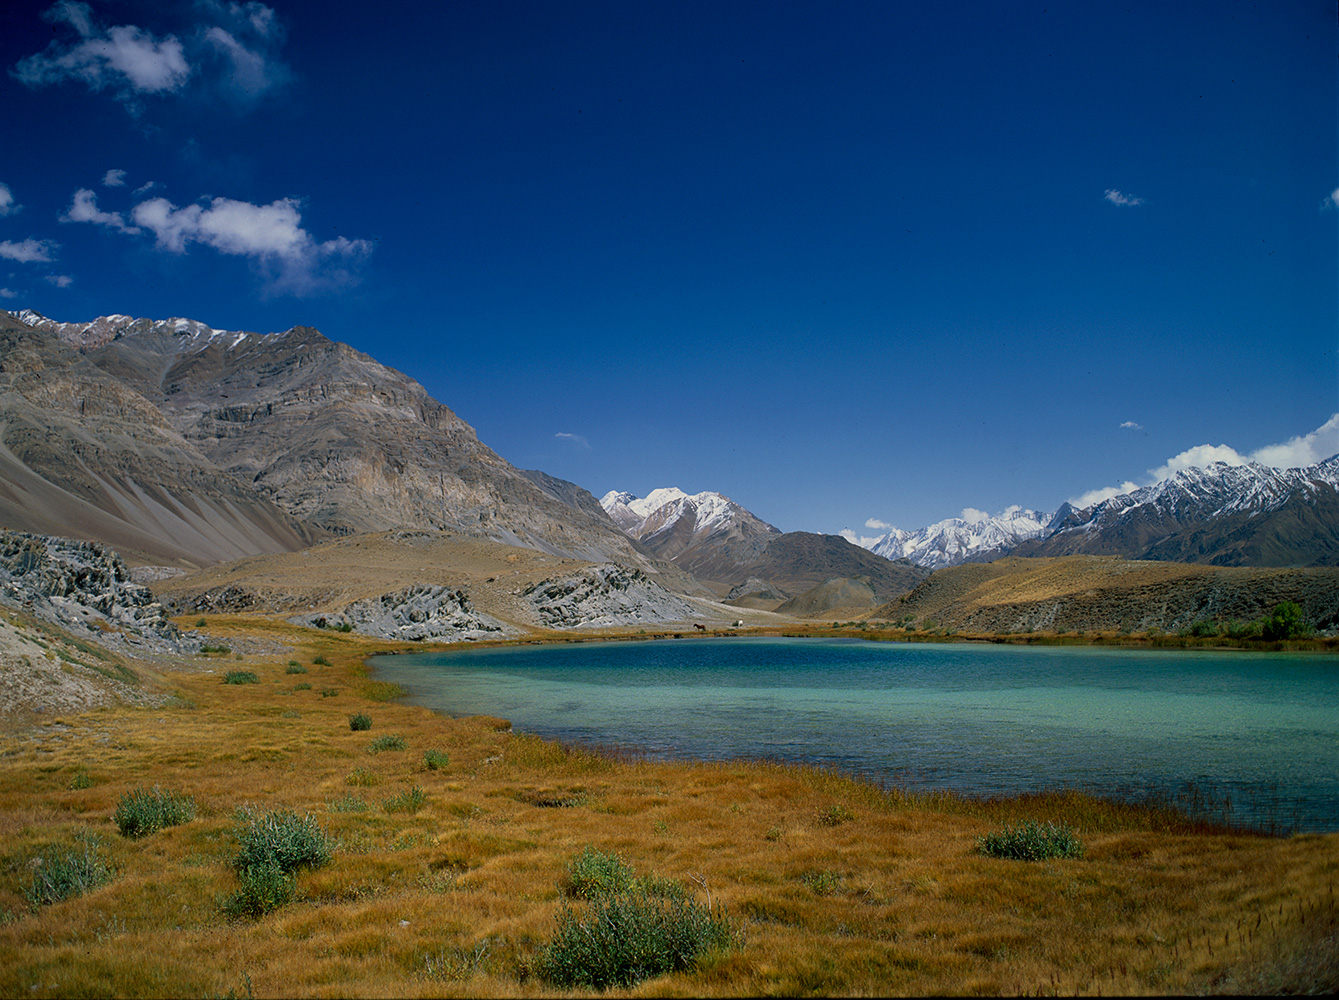 This lake lies just below Qui Quldi on the approach from Ishkarwarz. Beyond is the snout of the Chiantar glacier.Bronica ETRSi, Fuji Velvia